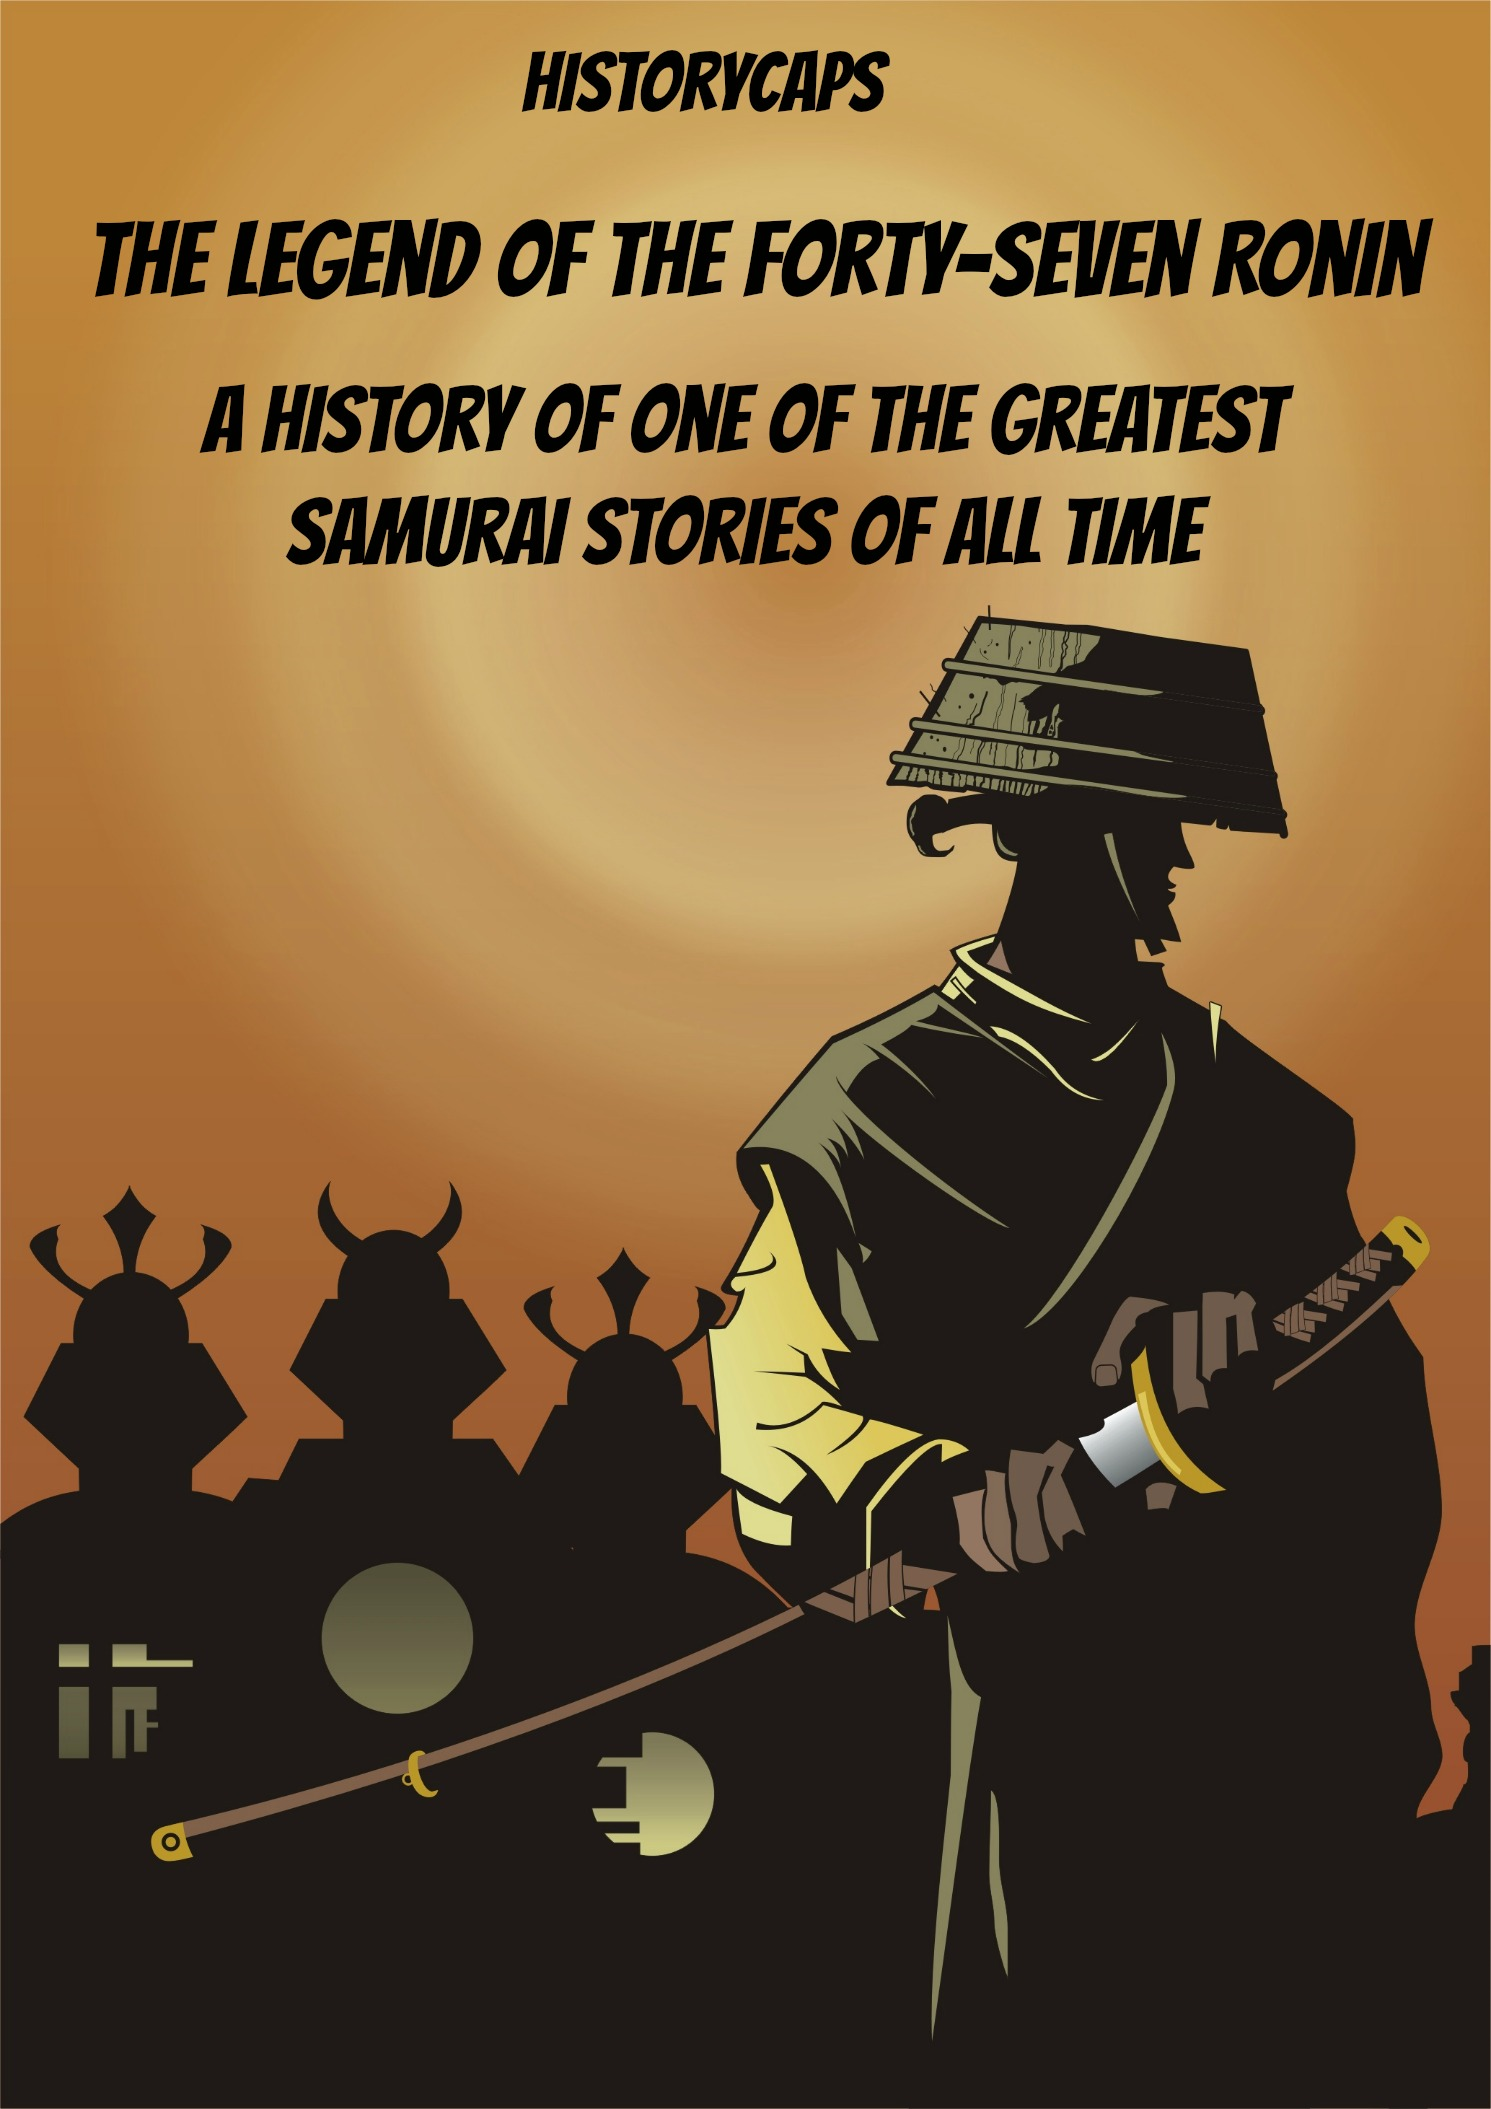 The Legend of the Forty-Seven Ronin: A History of One of the Greatest Samurai Stories of All Time